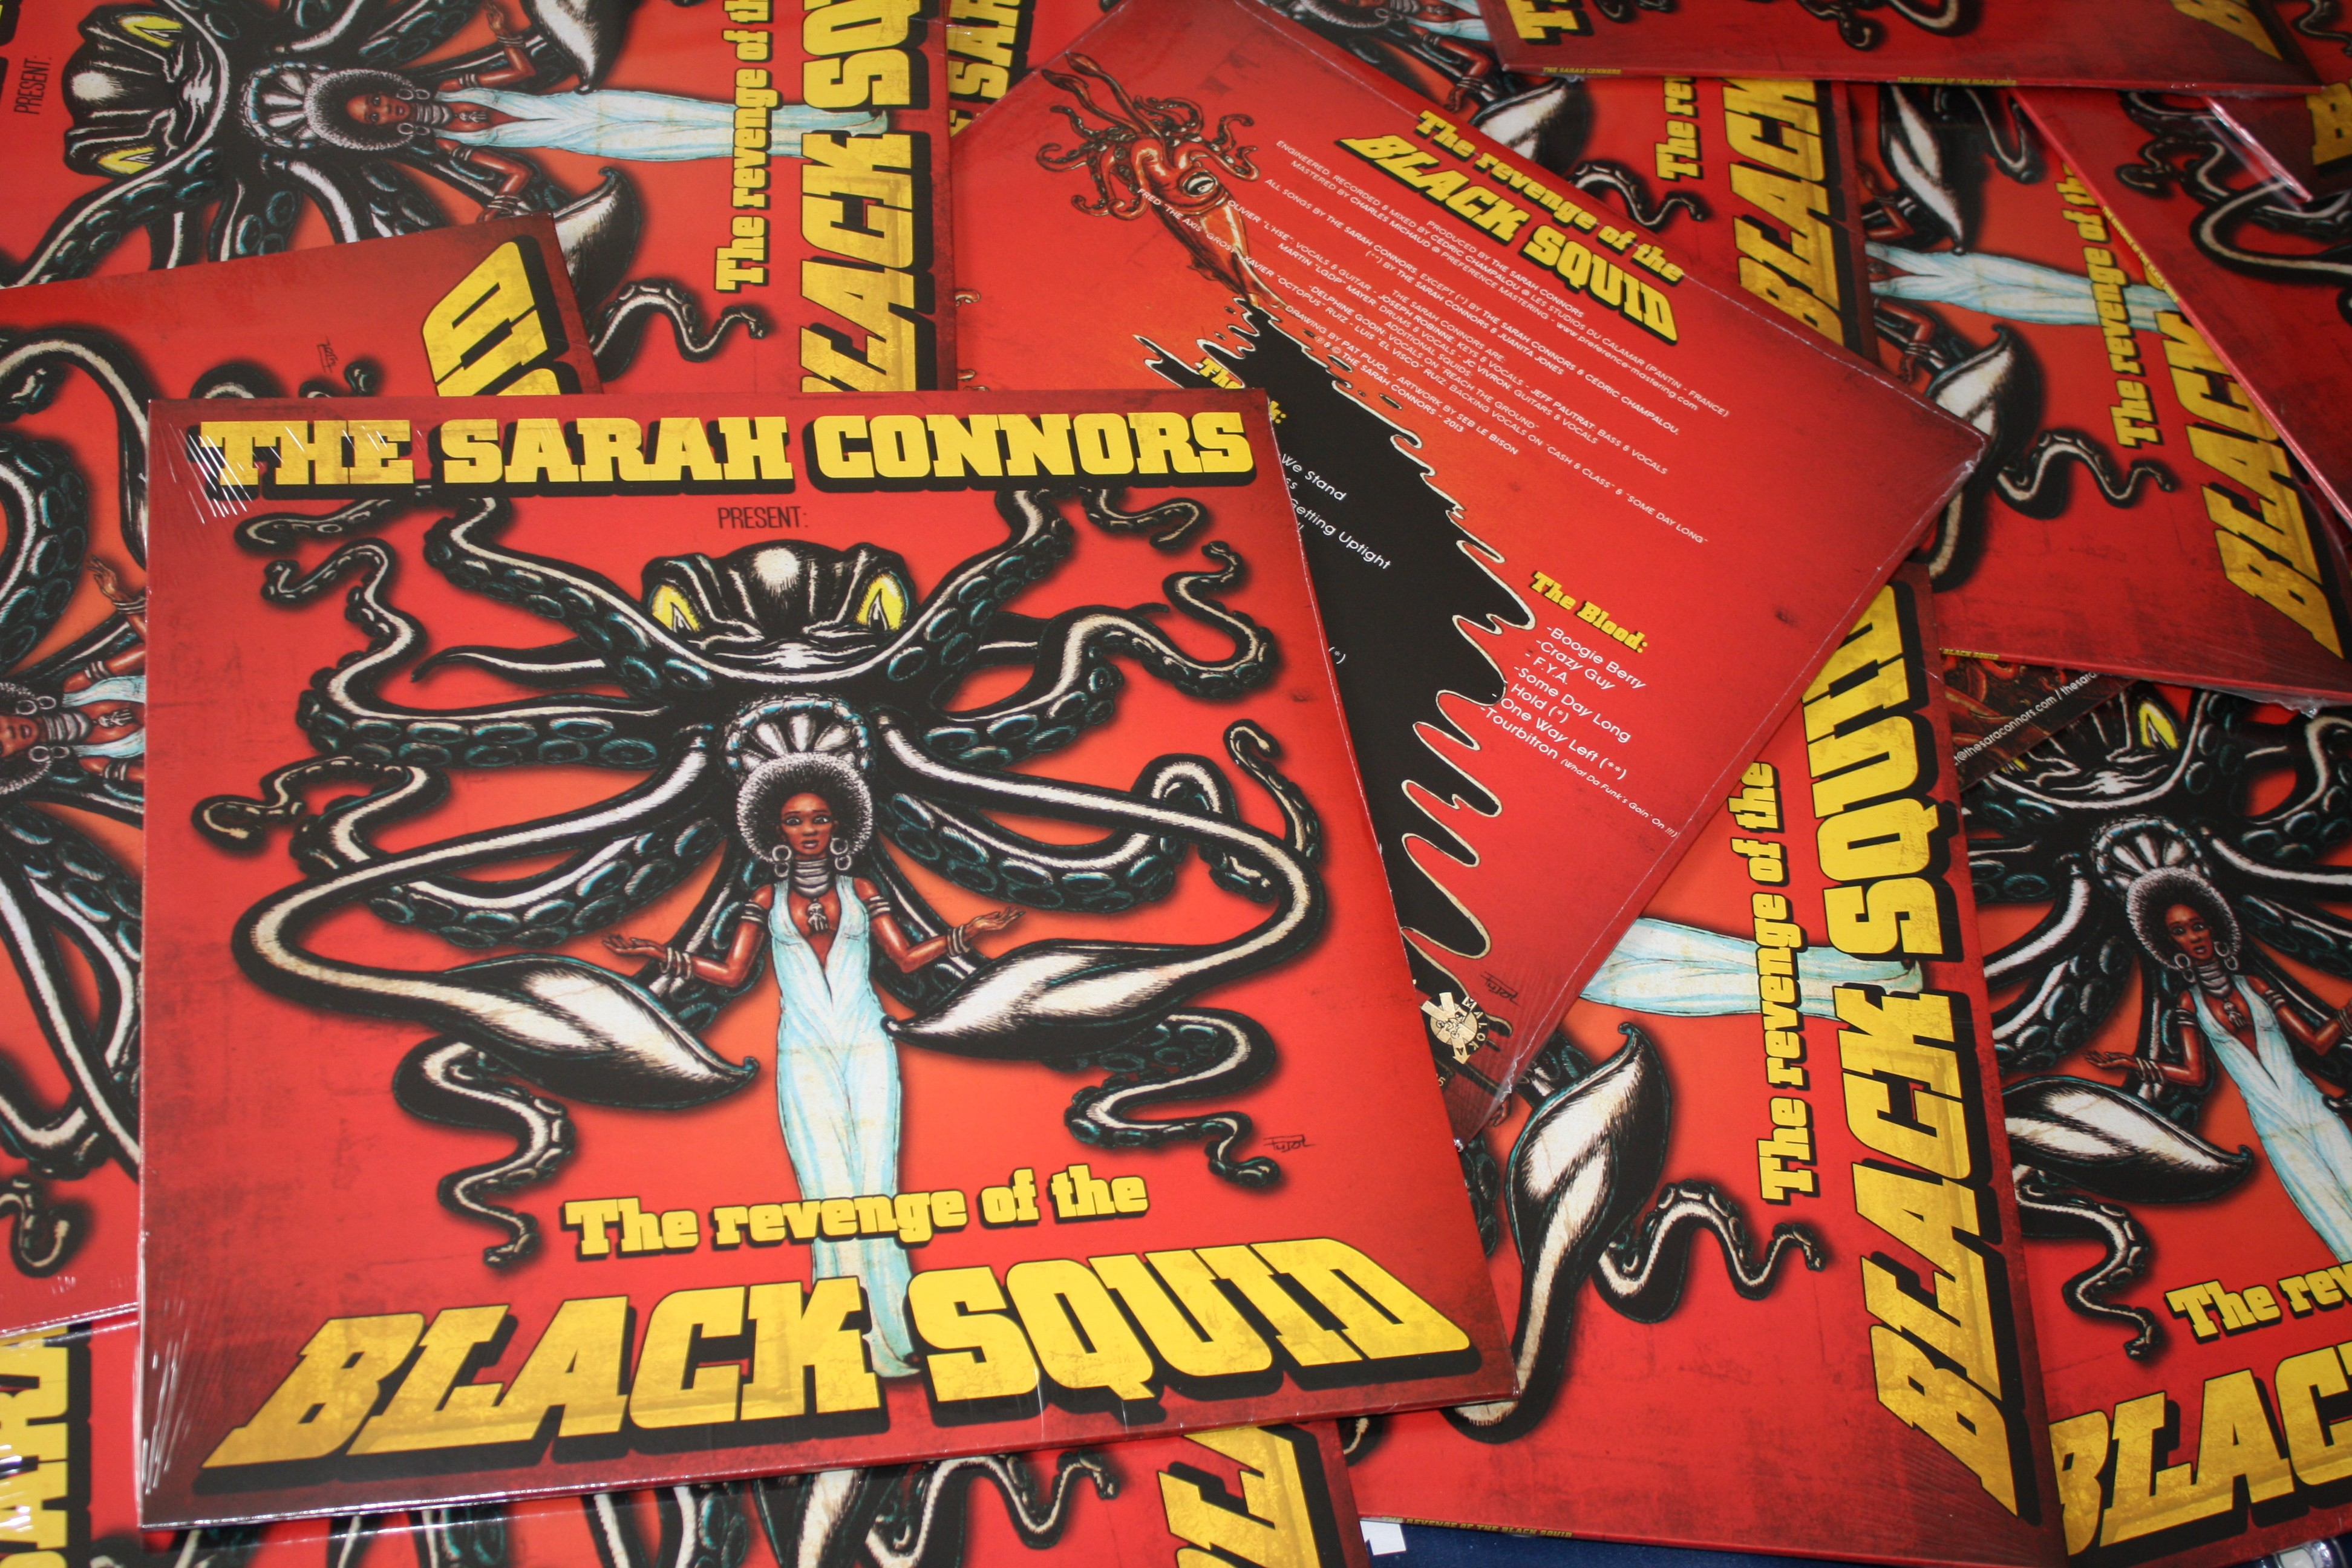 Sarah Connors, the - The Revenge of the Black Squid - LP